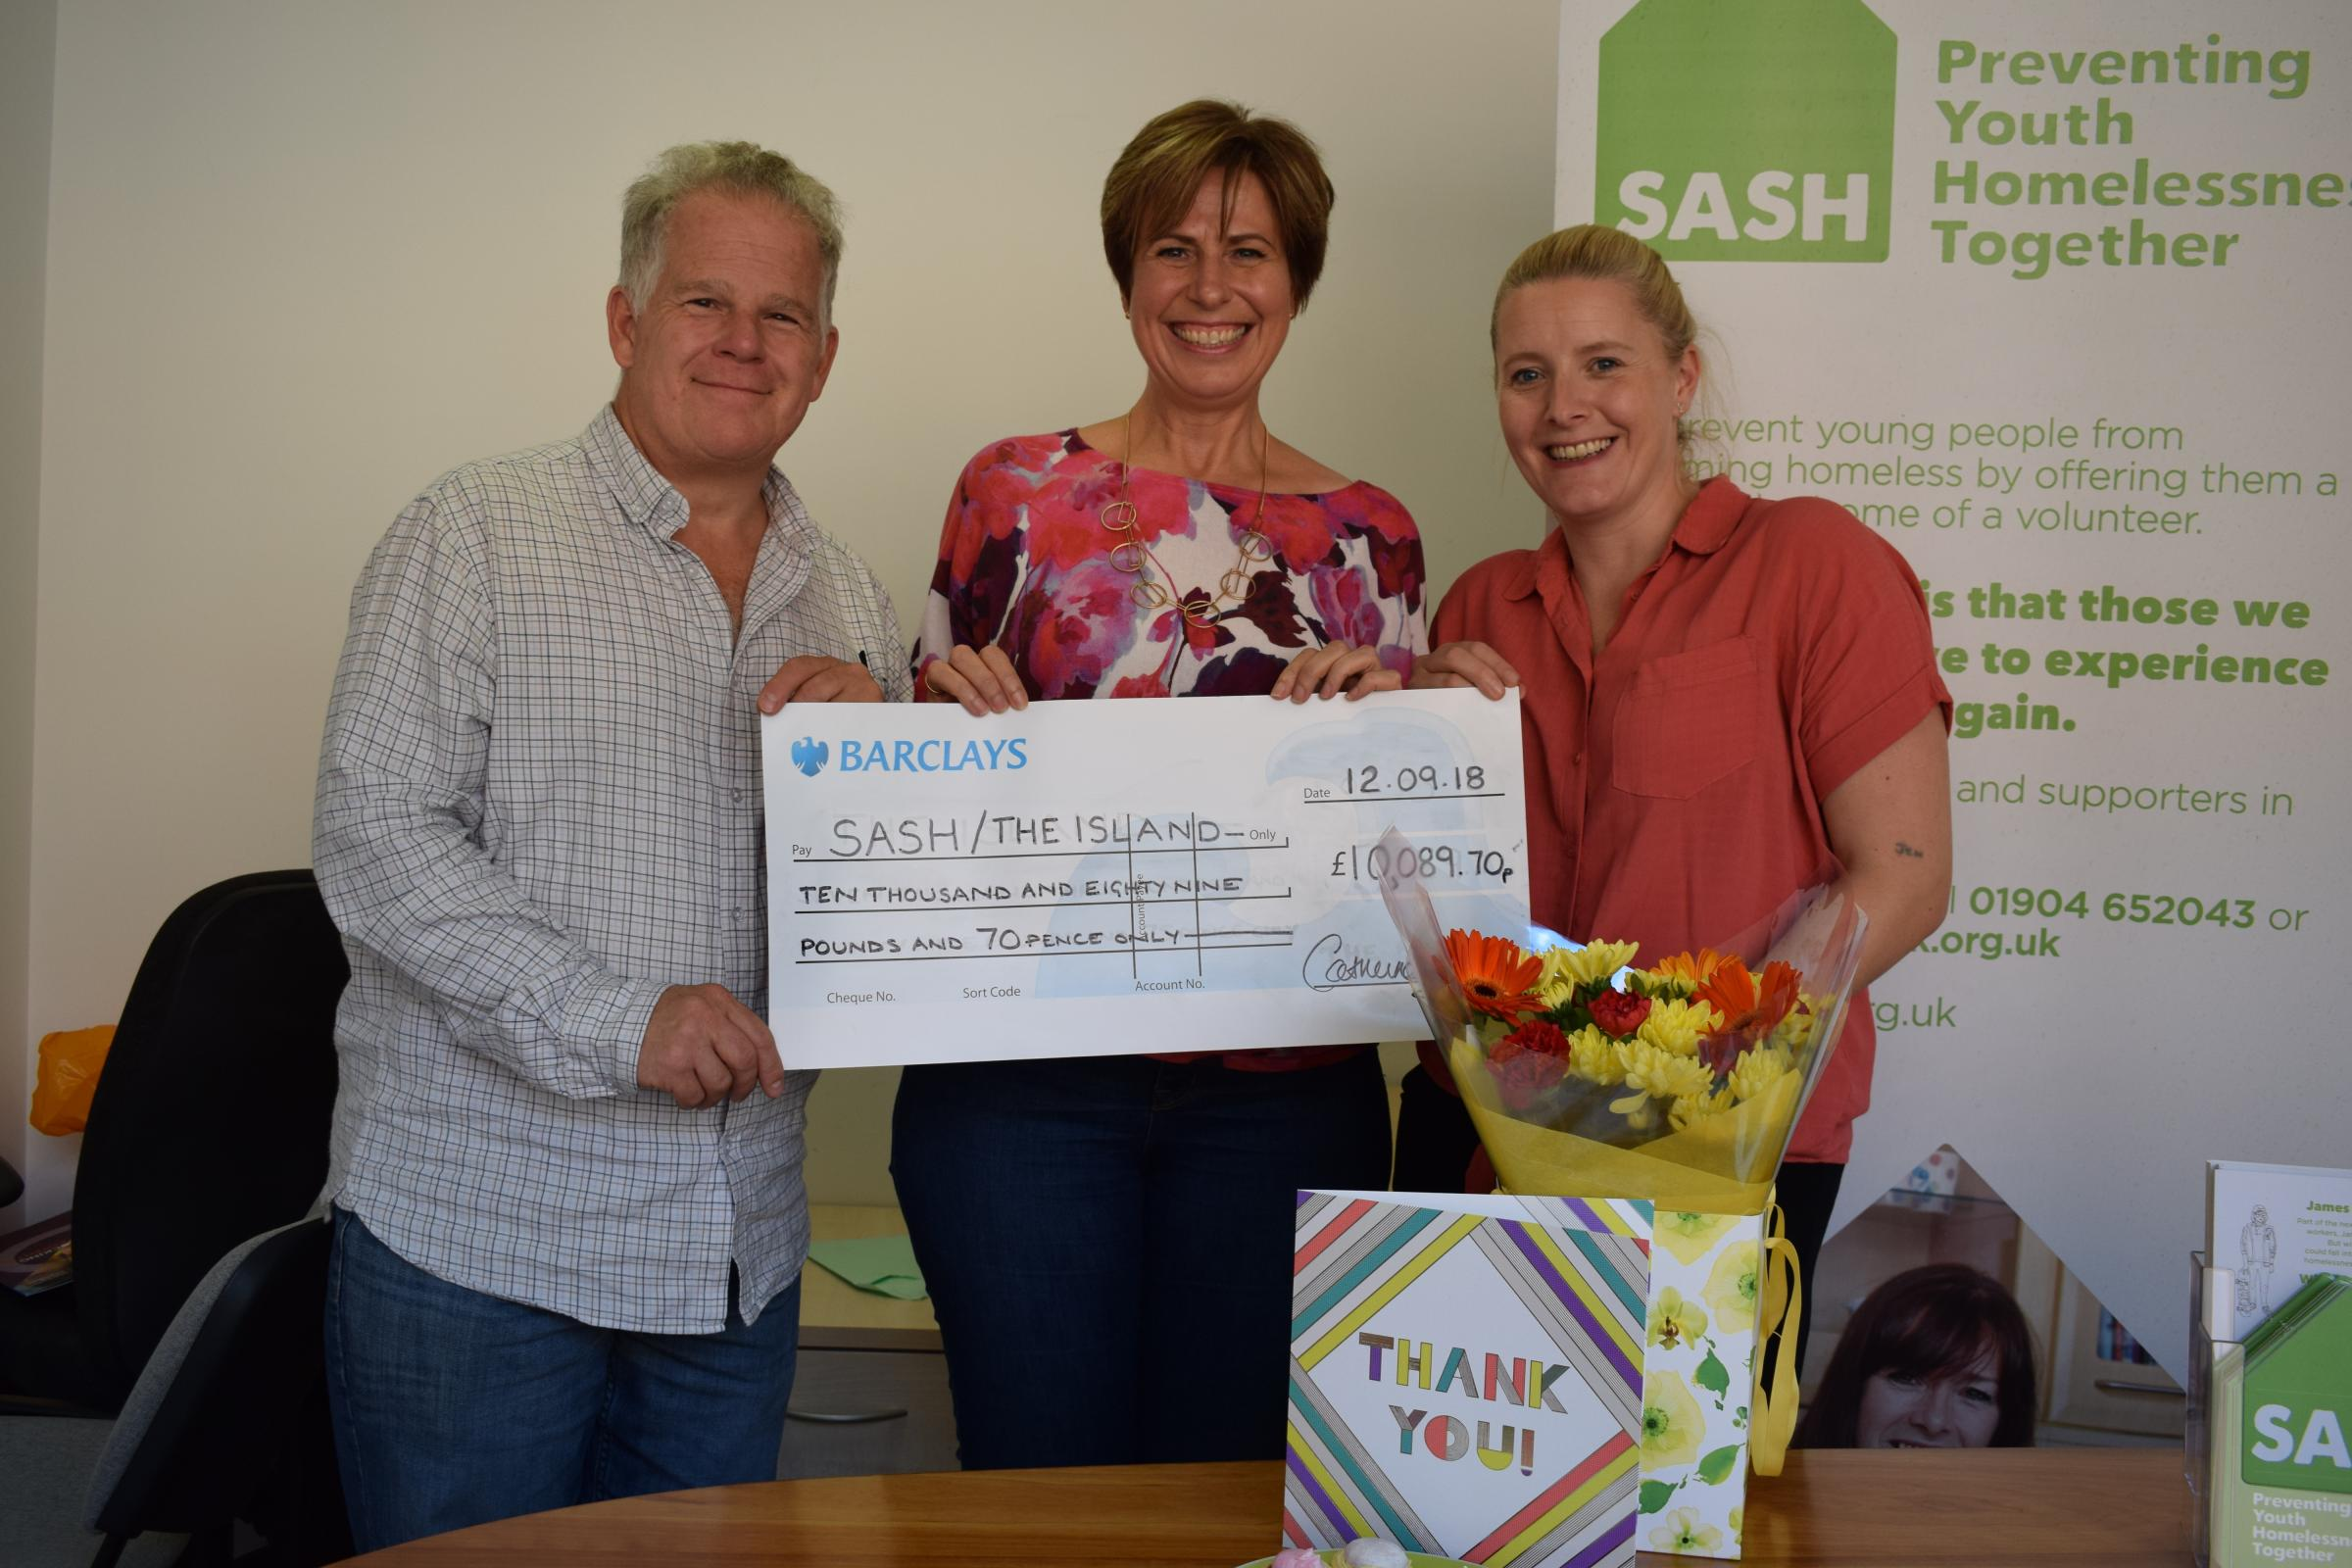 Catherine Adamson, centre, hands over £10,000 raised through fundraising to Nigel Poulton of The Island and Jenna Goodridge from SASH